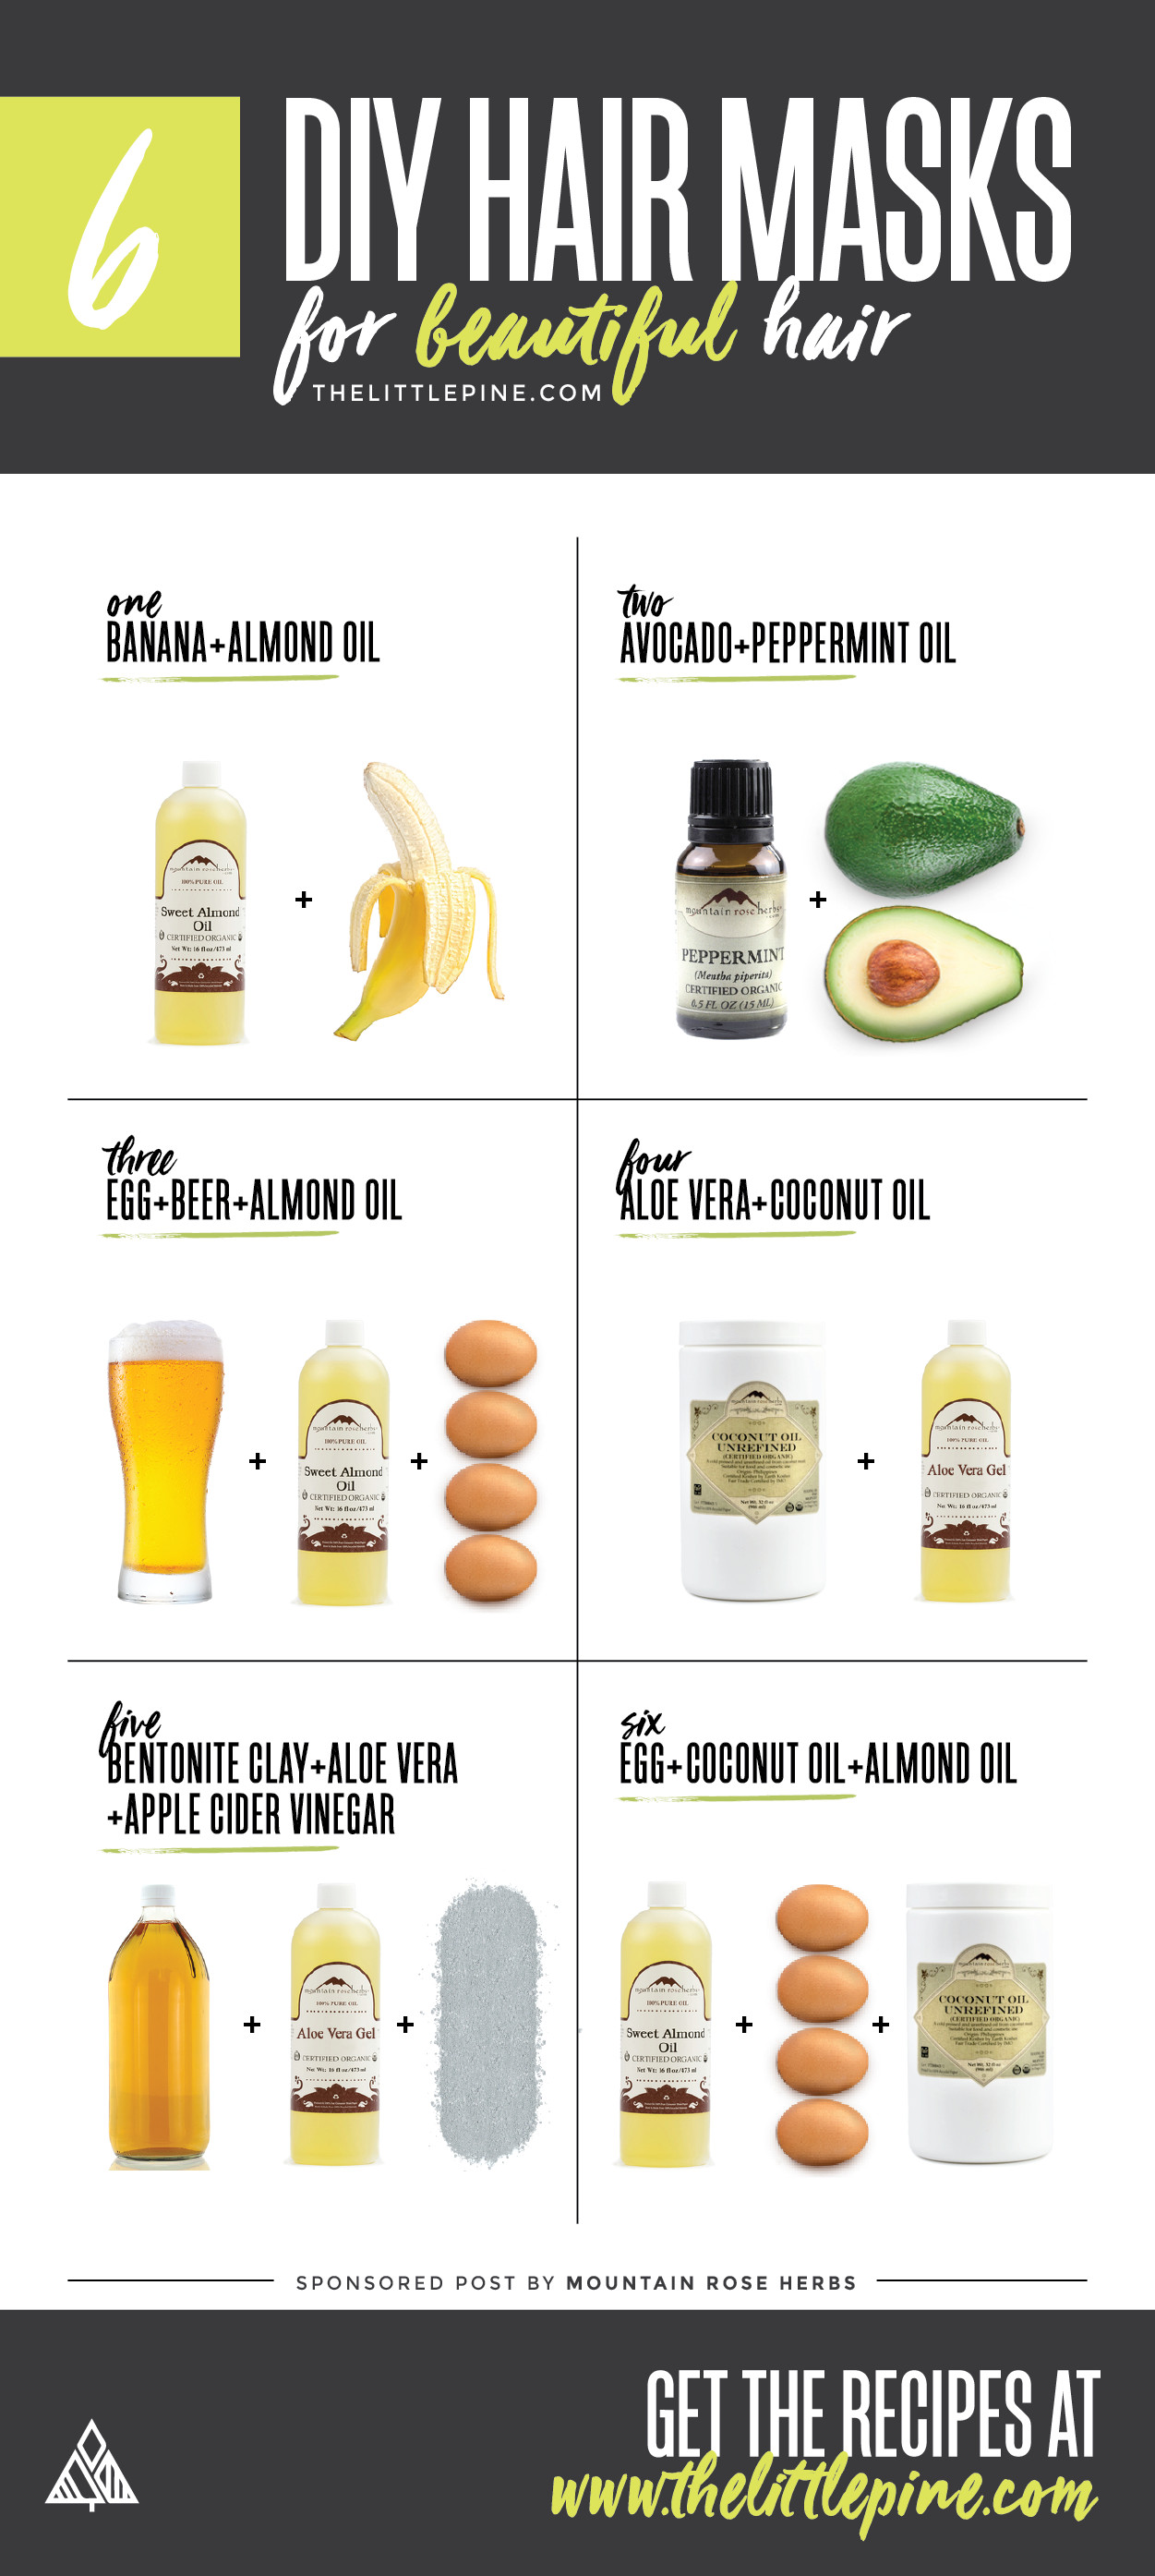 Best ideas about DIY Hair Masks . Save or Pin 6 DIY Hair Masks Little Pine Low Carb Now.